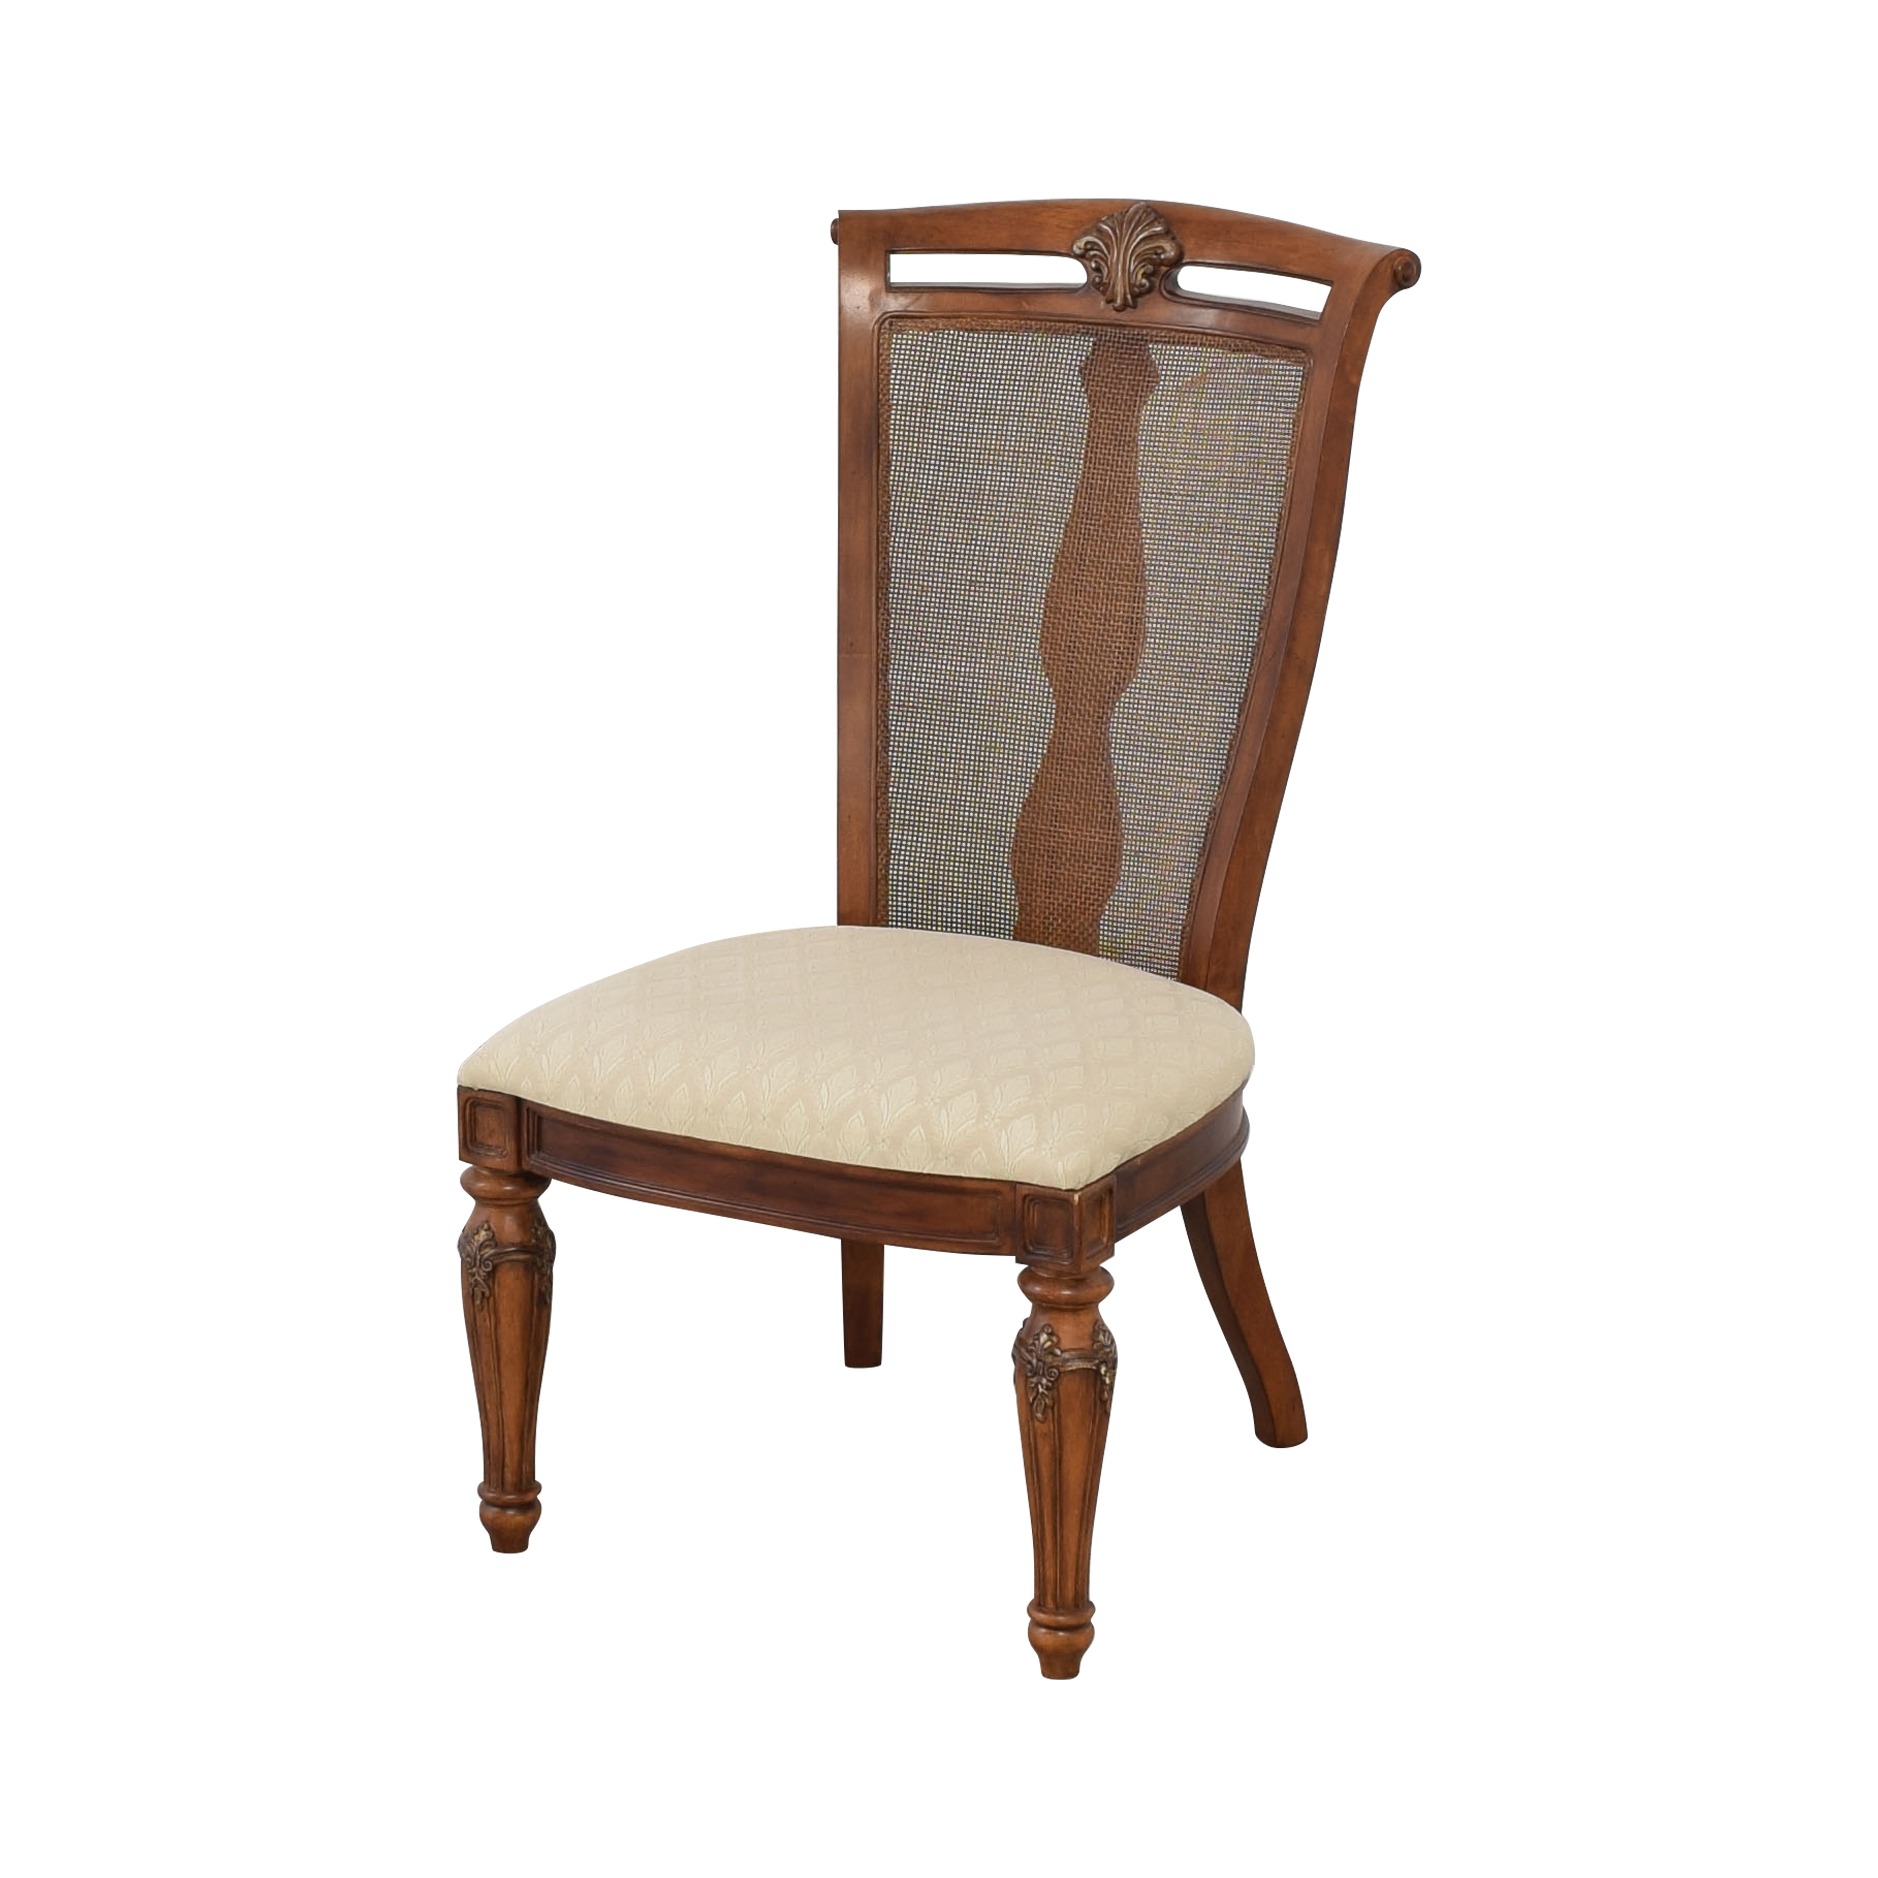 The Lane Company The Lane Company Side Dining Chairs dimensions